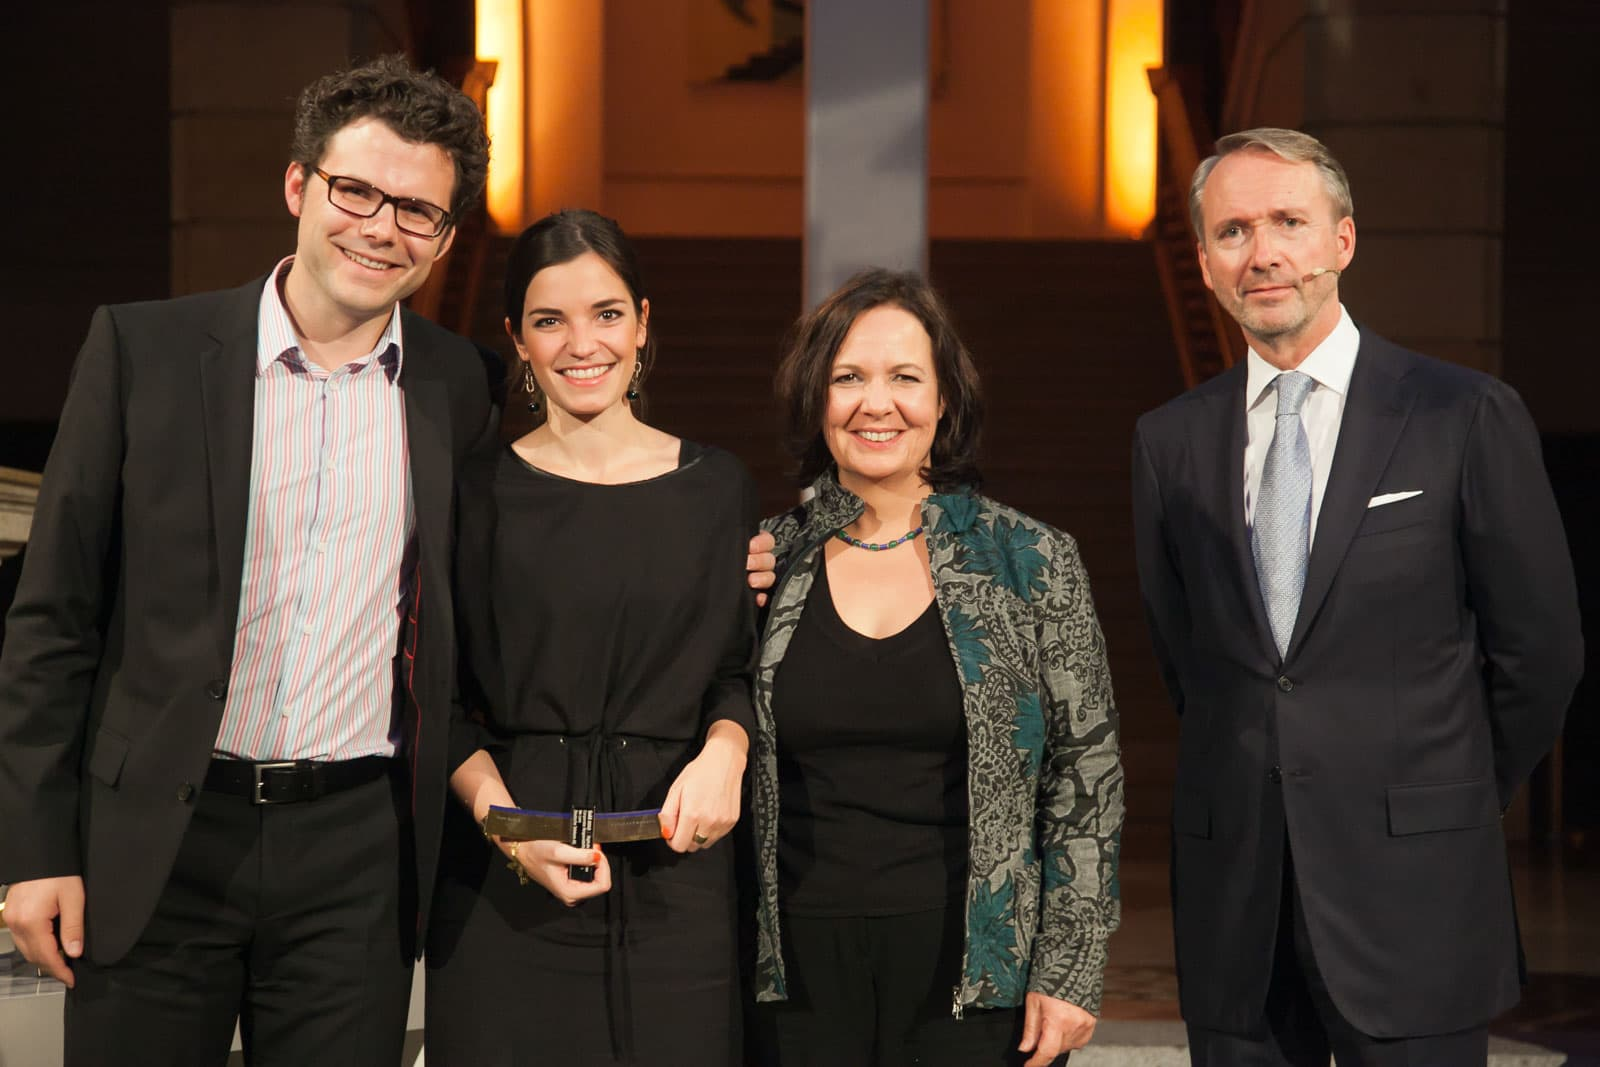 eventfotograf-berlin-econ-award-30.jpg